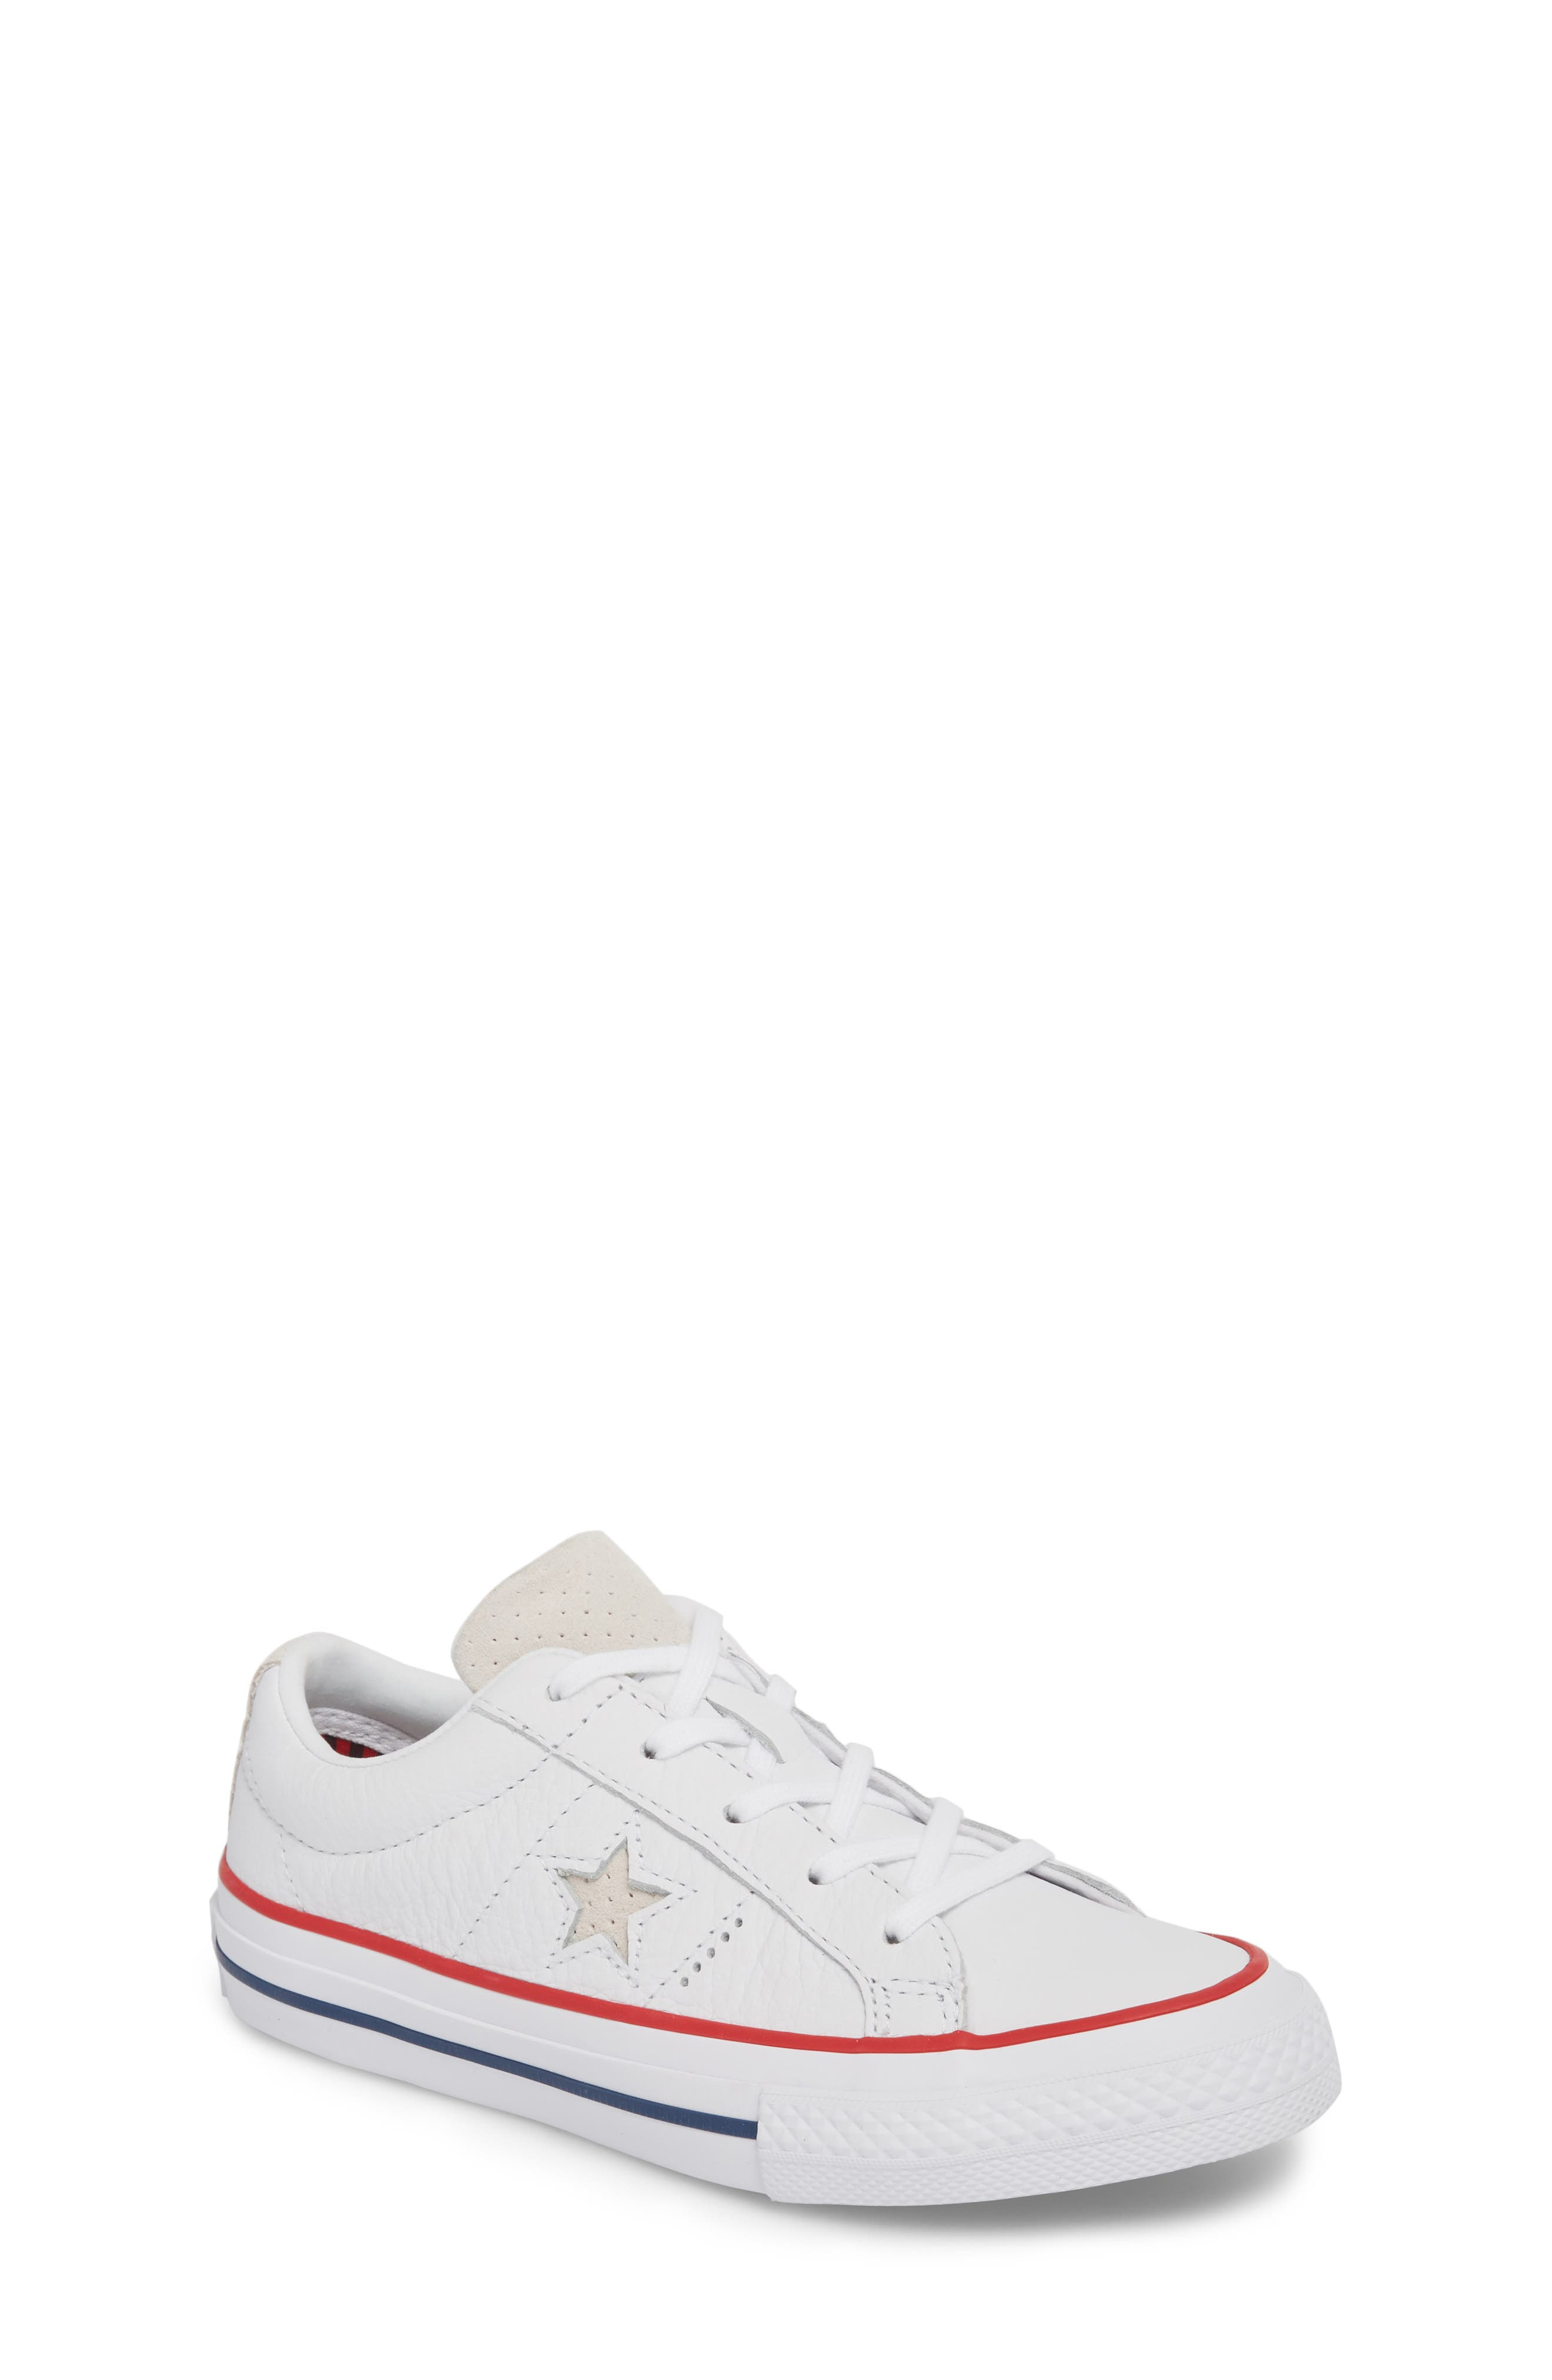 Chuck Taylor<sup>®</sup> All Star<sup>®</sup> New Heritage Oxford Sneaker,                             Main thumbnail 1, color,                             White